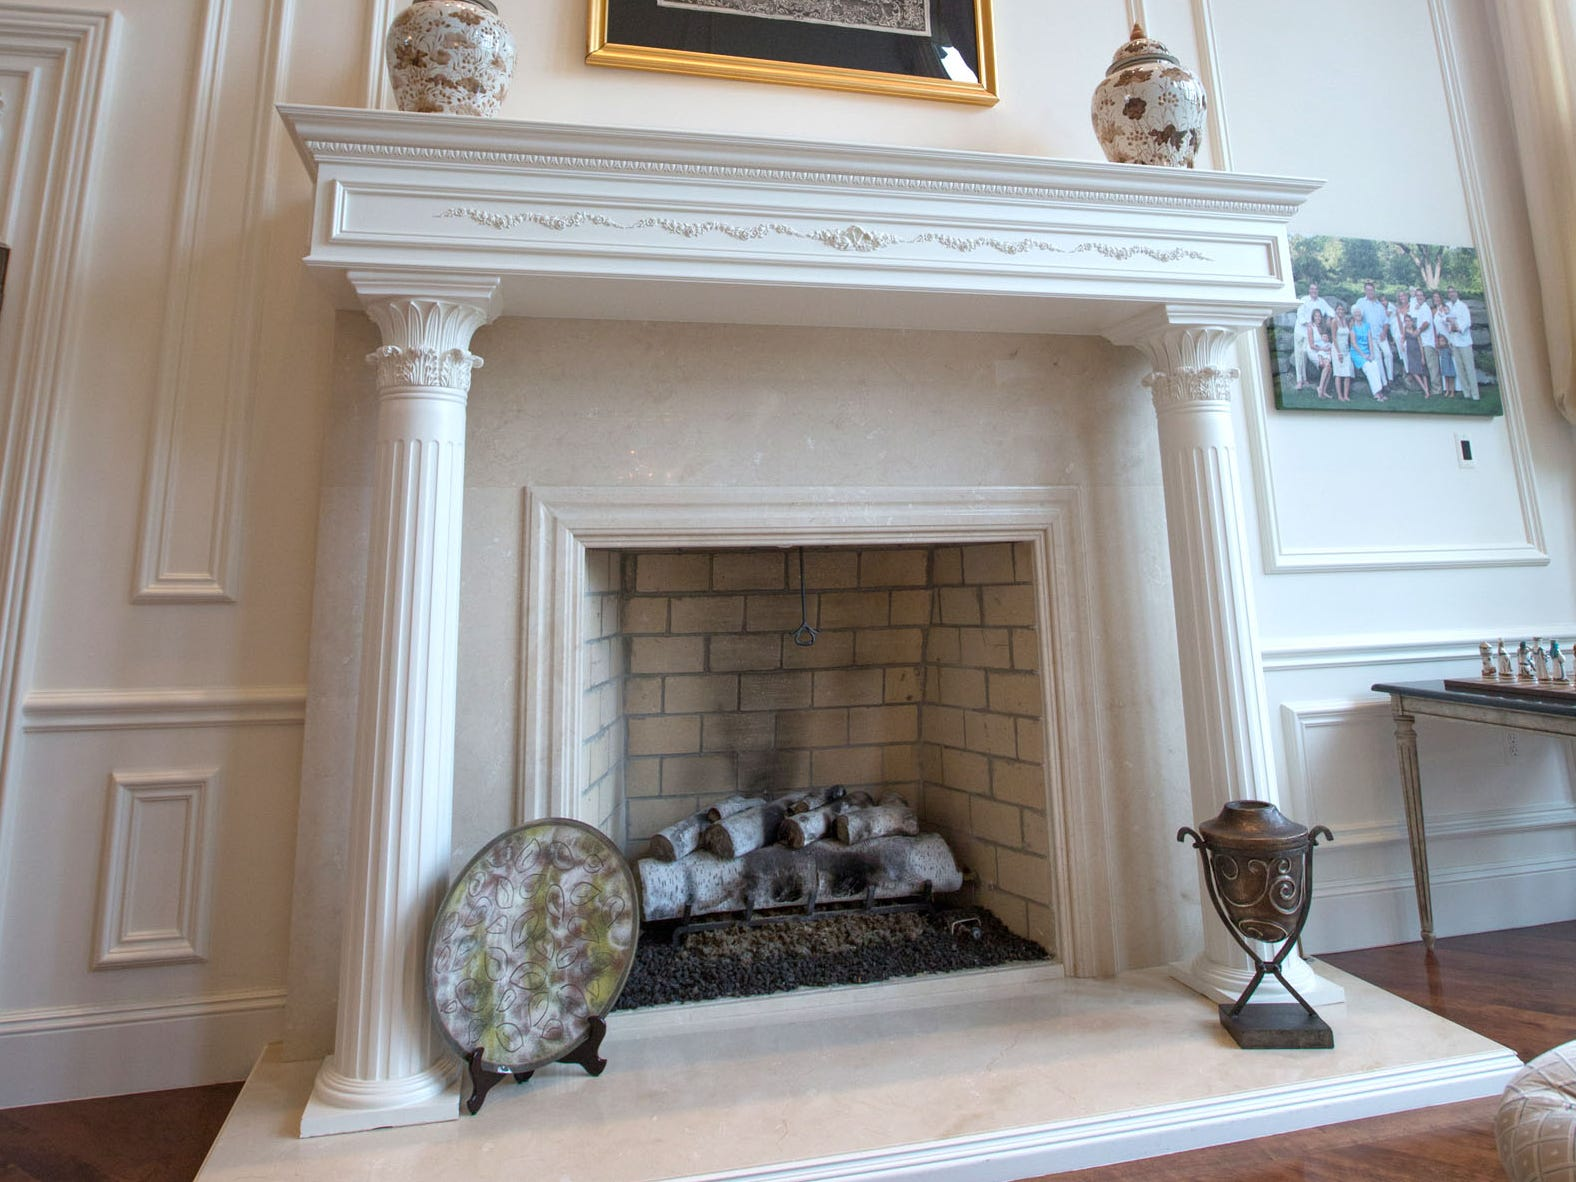 The owners designed the white marble fireplace, keeping the theme of pillars. The house has five fireplaces.